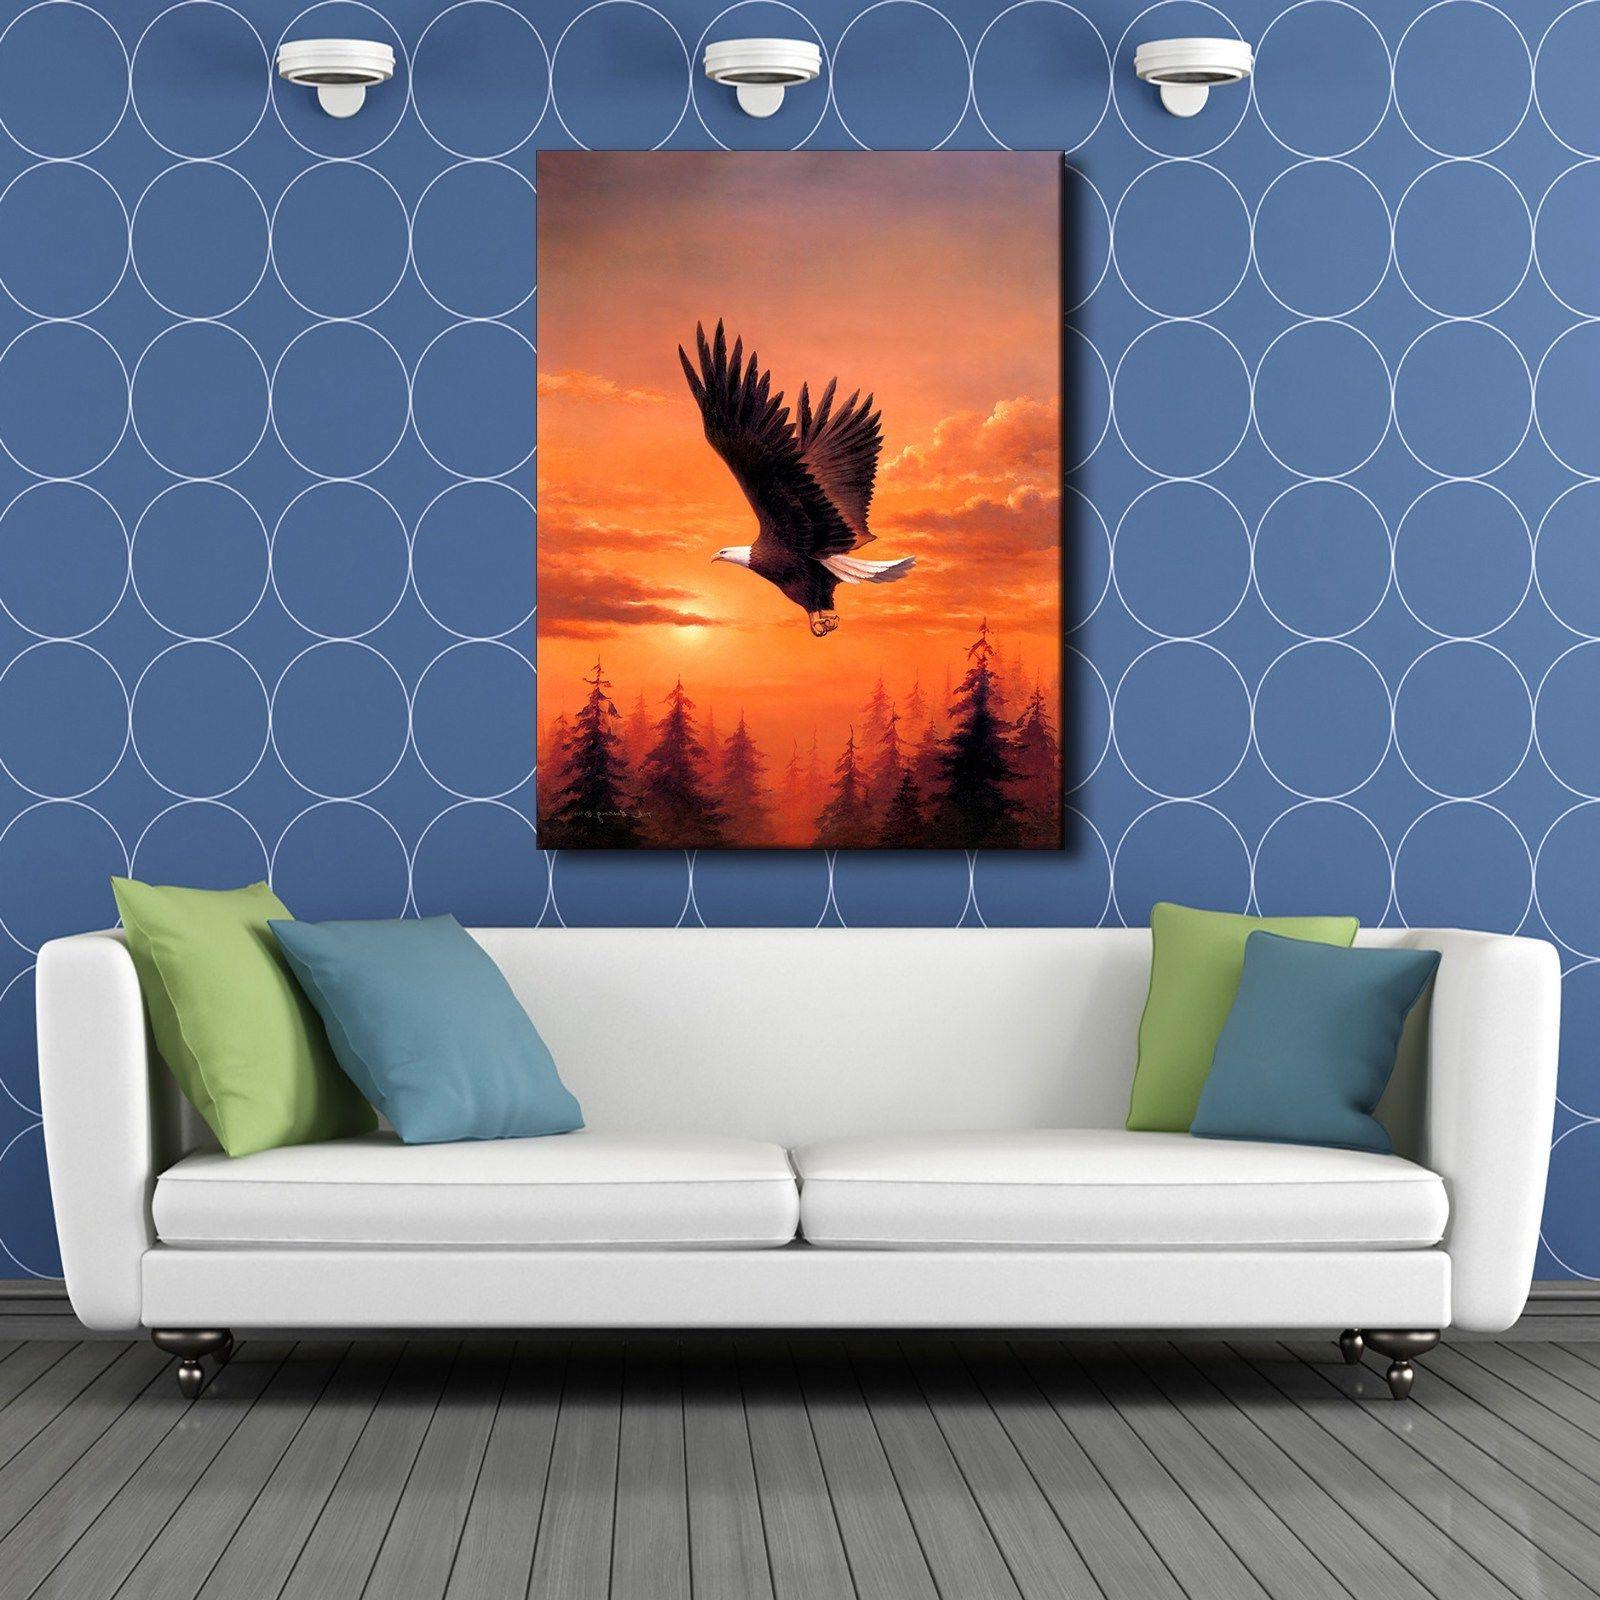 A0441 Bald Eagle In Home Decor Canvas Print Wall Painting